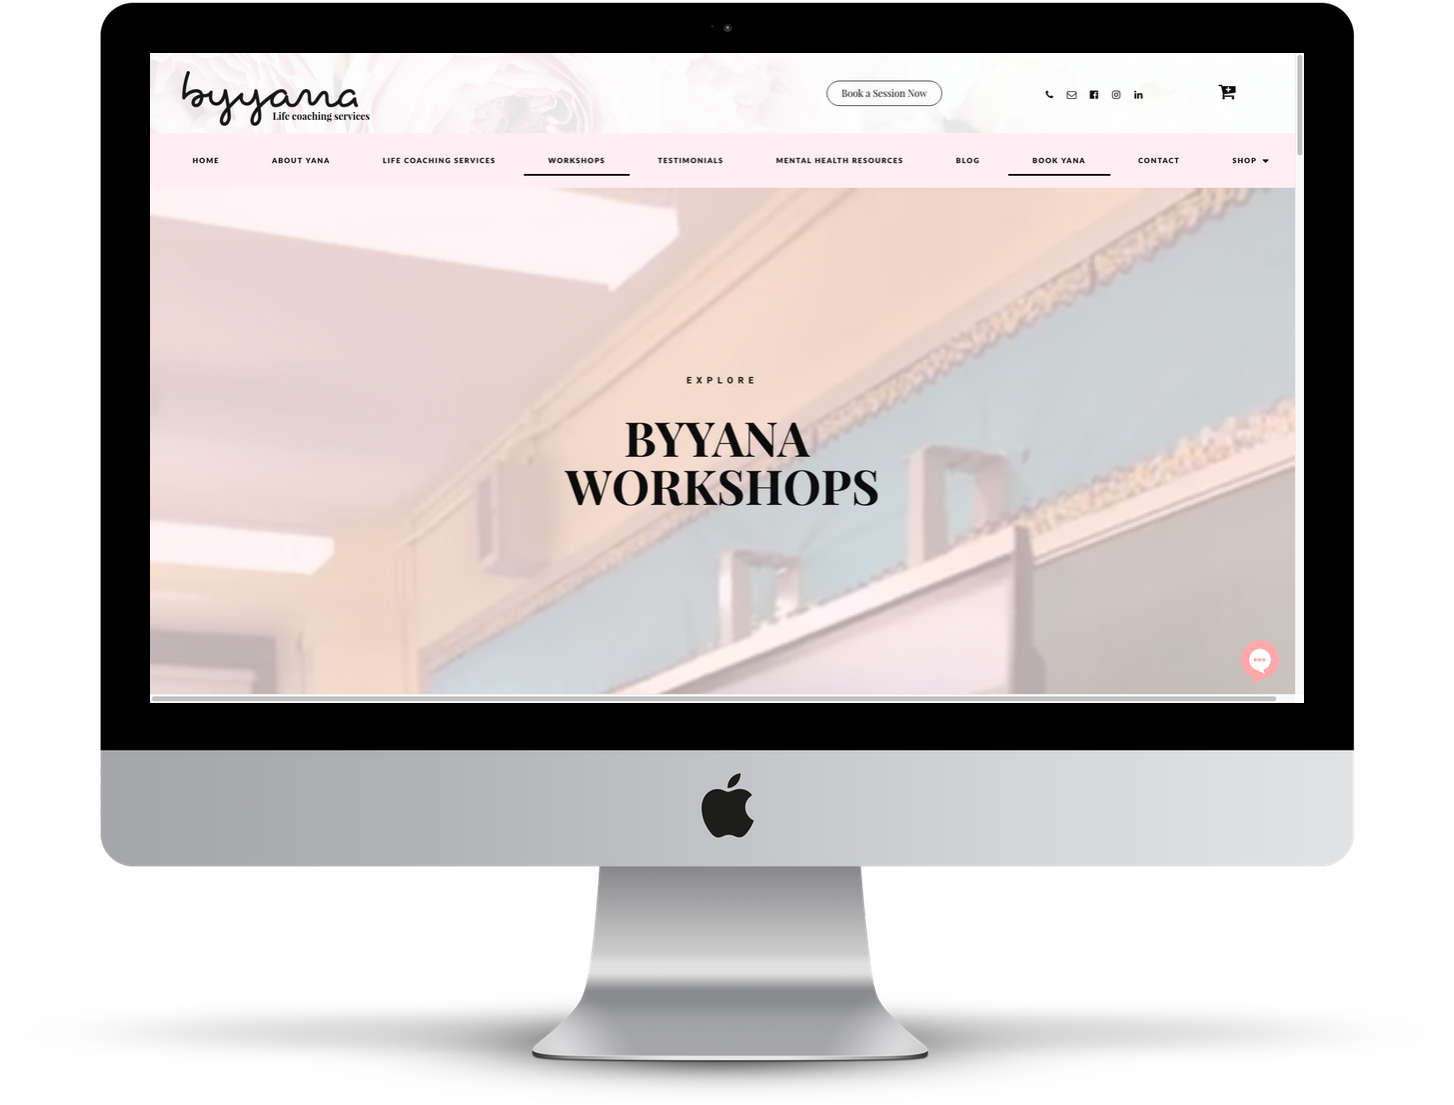 5-BYYANA WEB DESIGN EYEBRANDIT